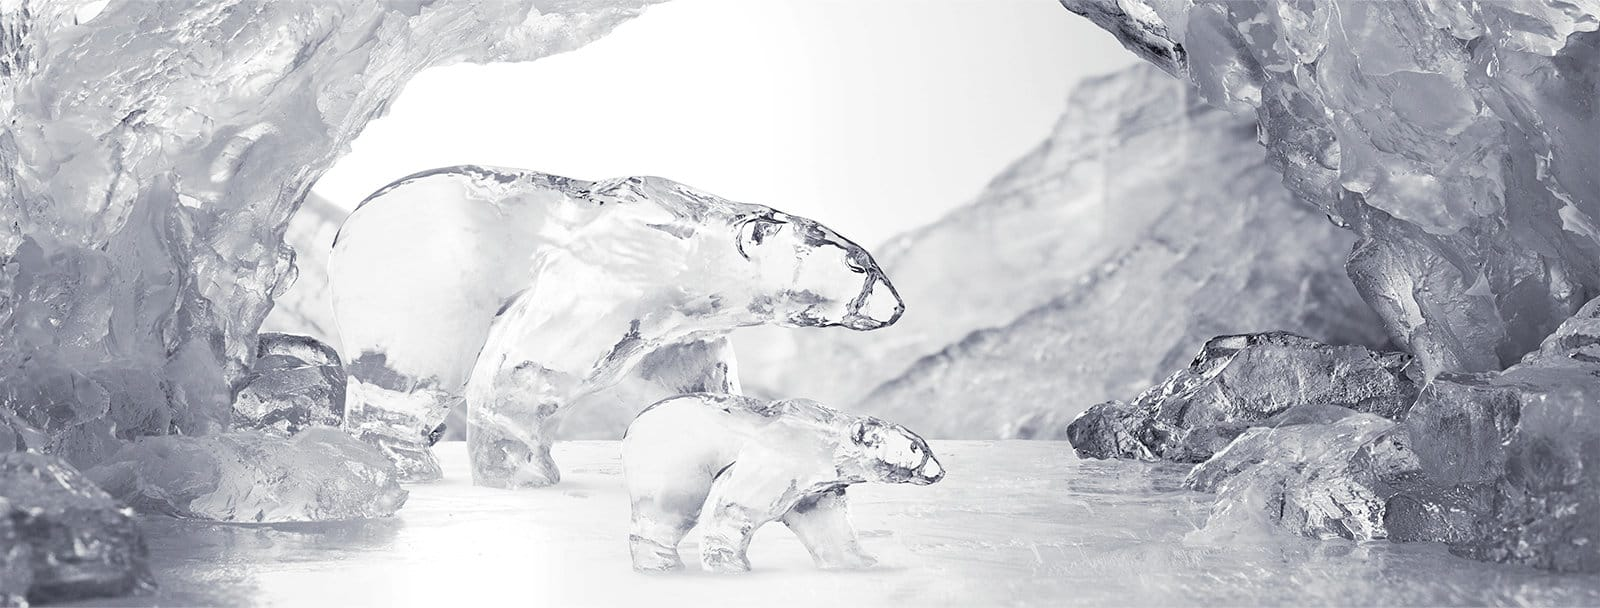 A family of two polar bears carved from ice in a bright ice cave.